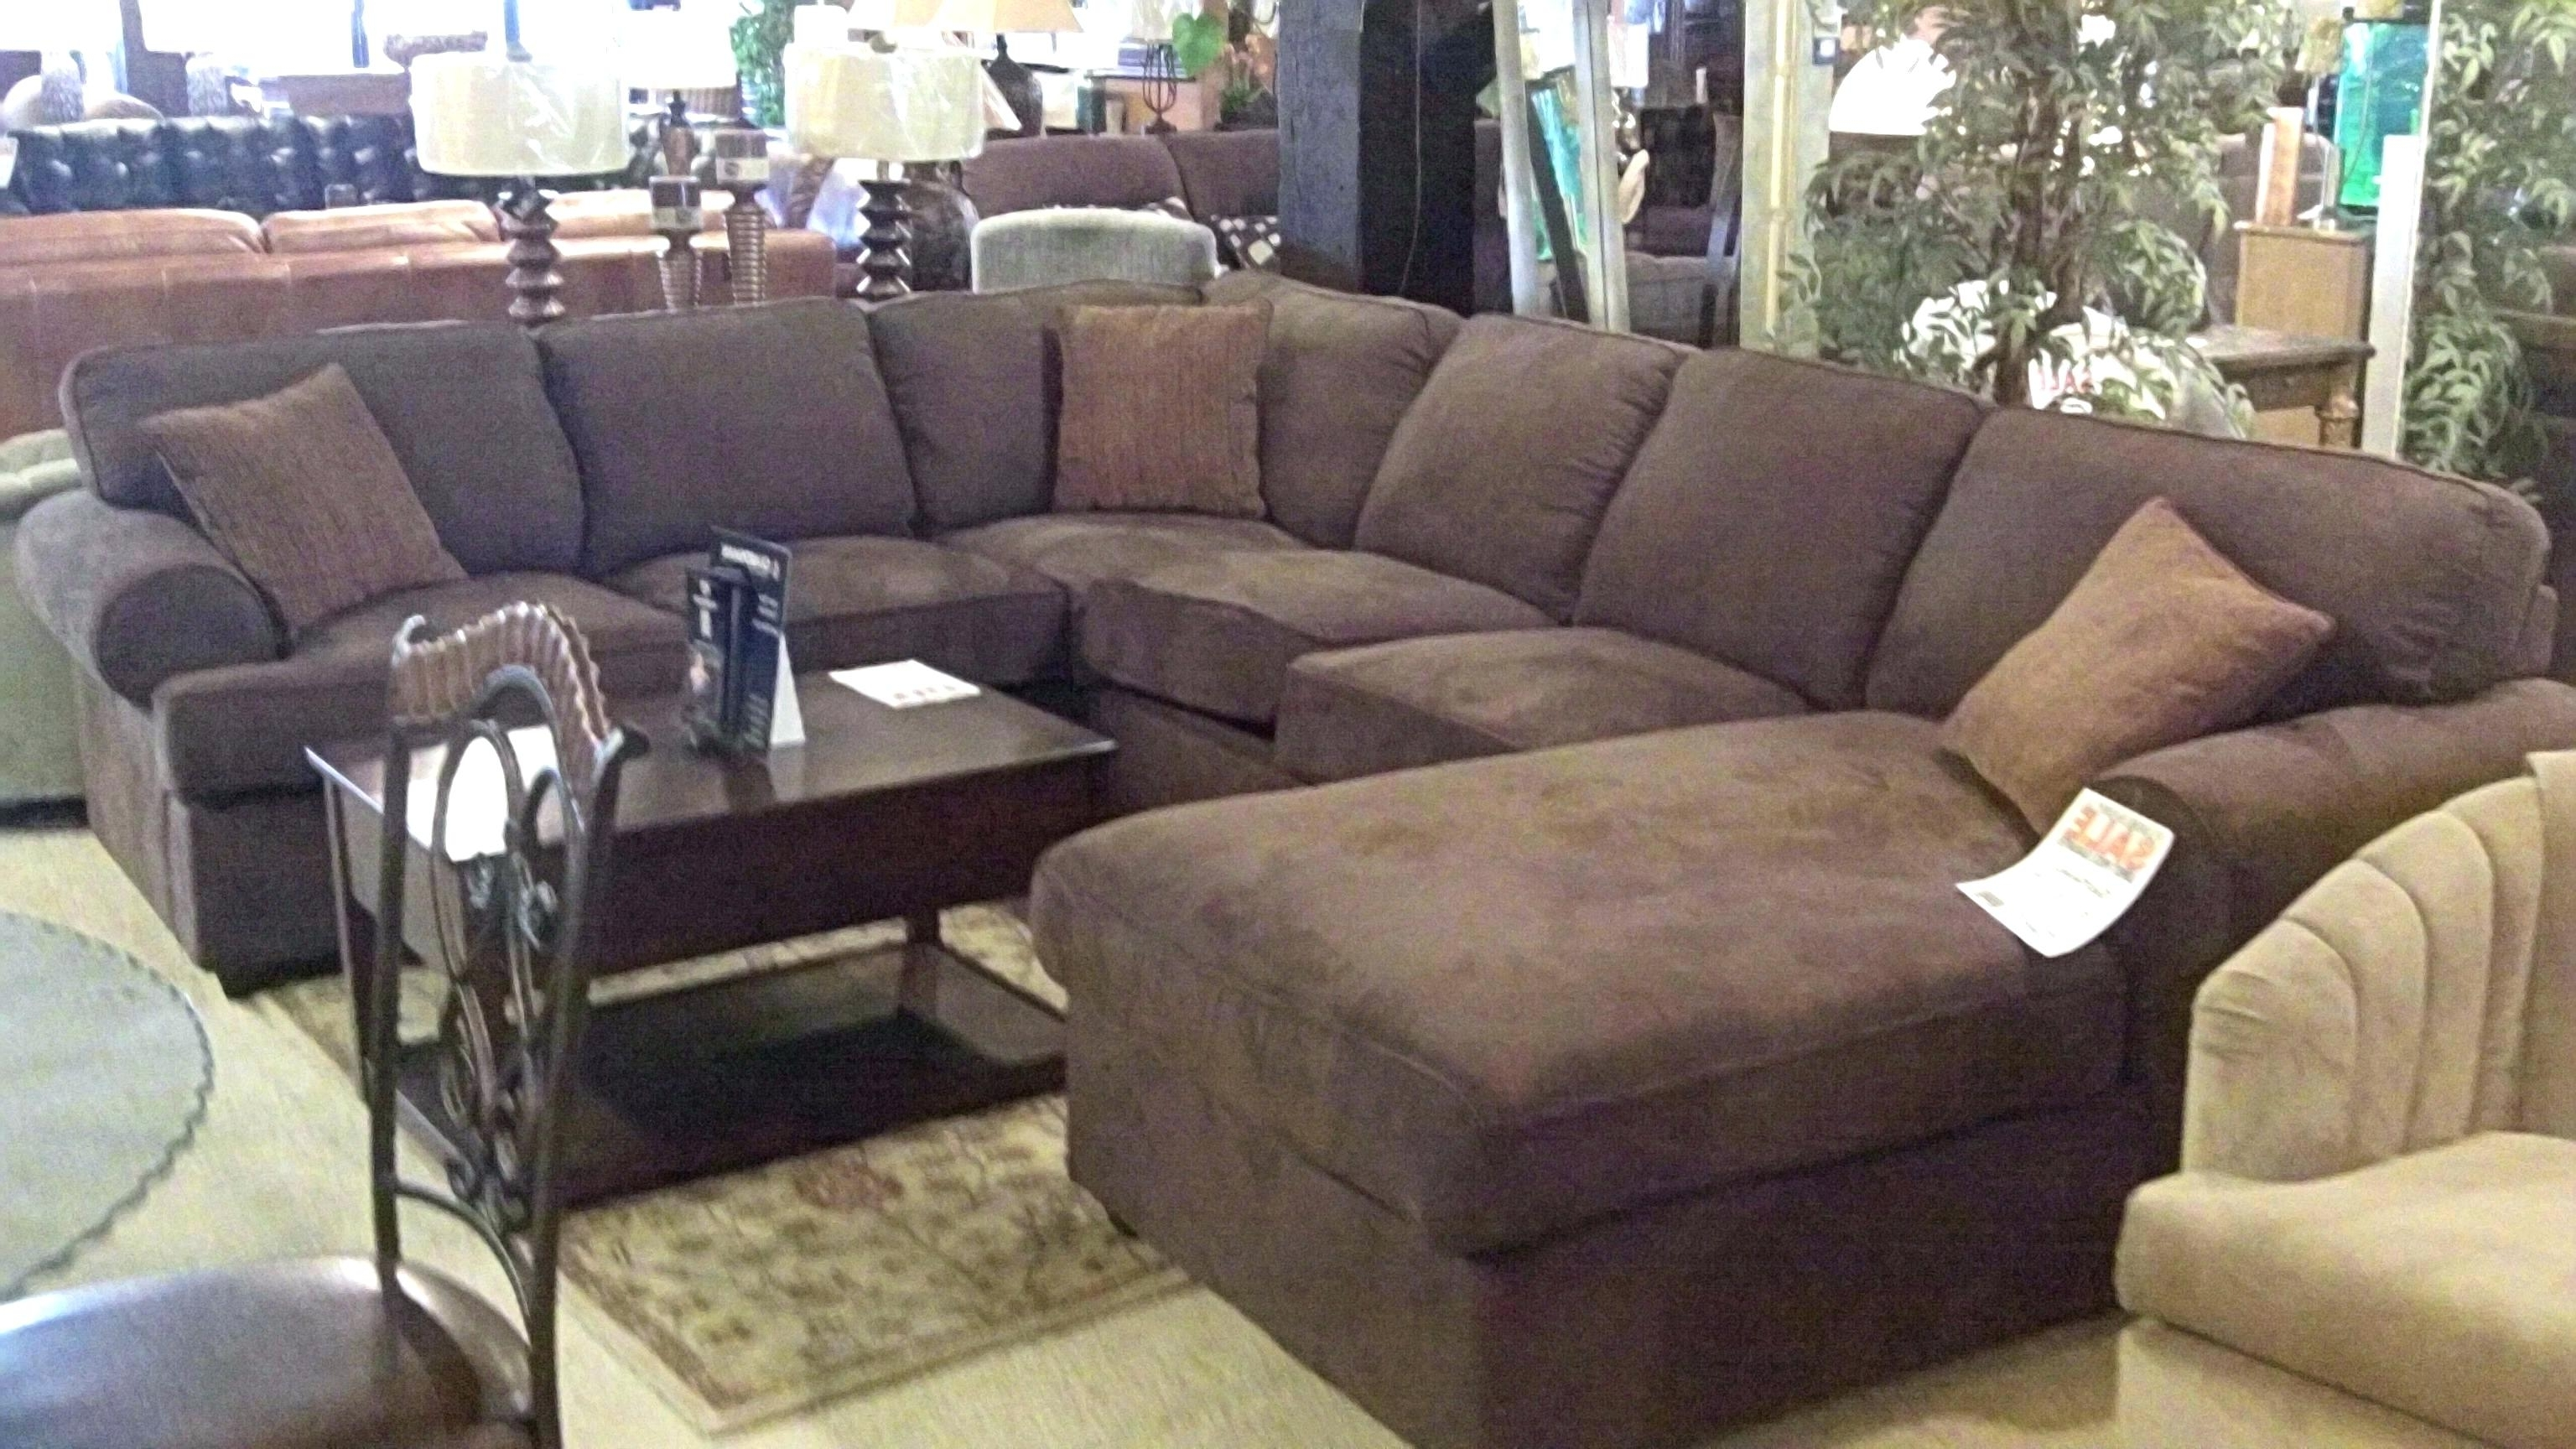 Jcpenney Couch – Ncgeconference Regarding Current Jcpenney Sectional Sofas (View 5 of 20)